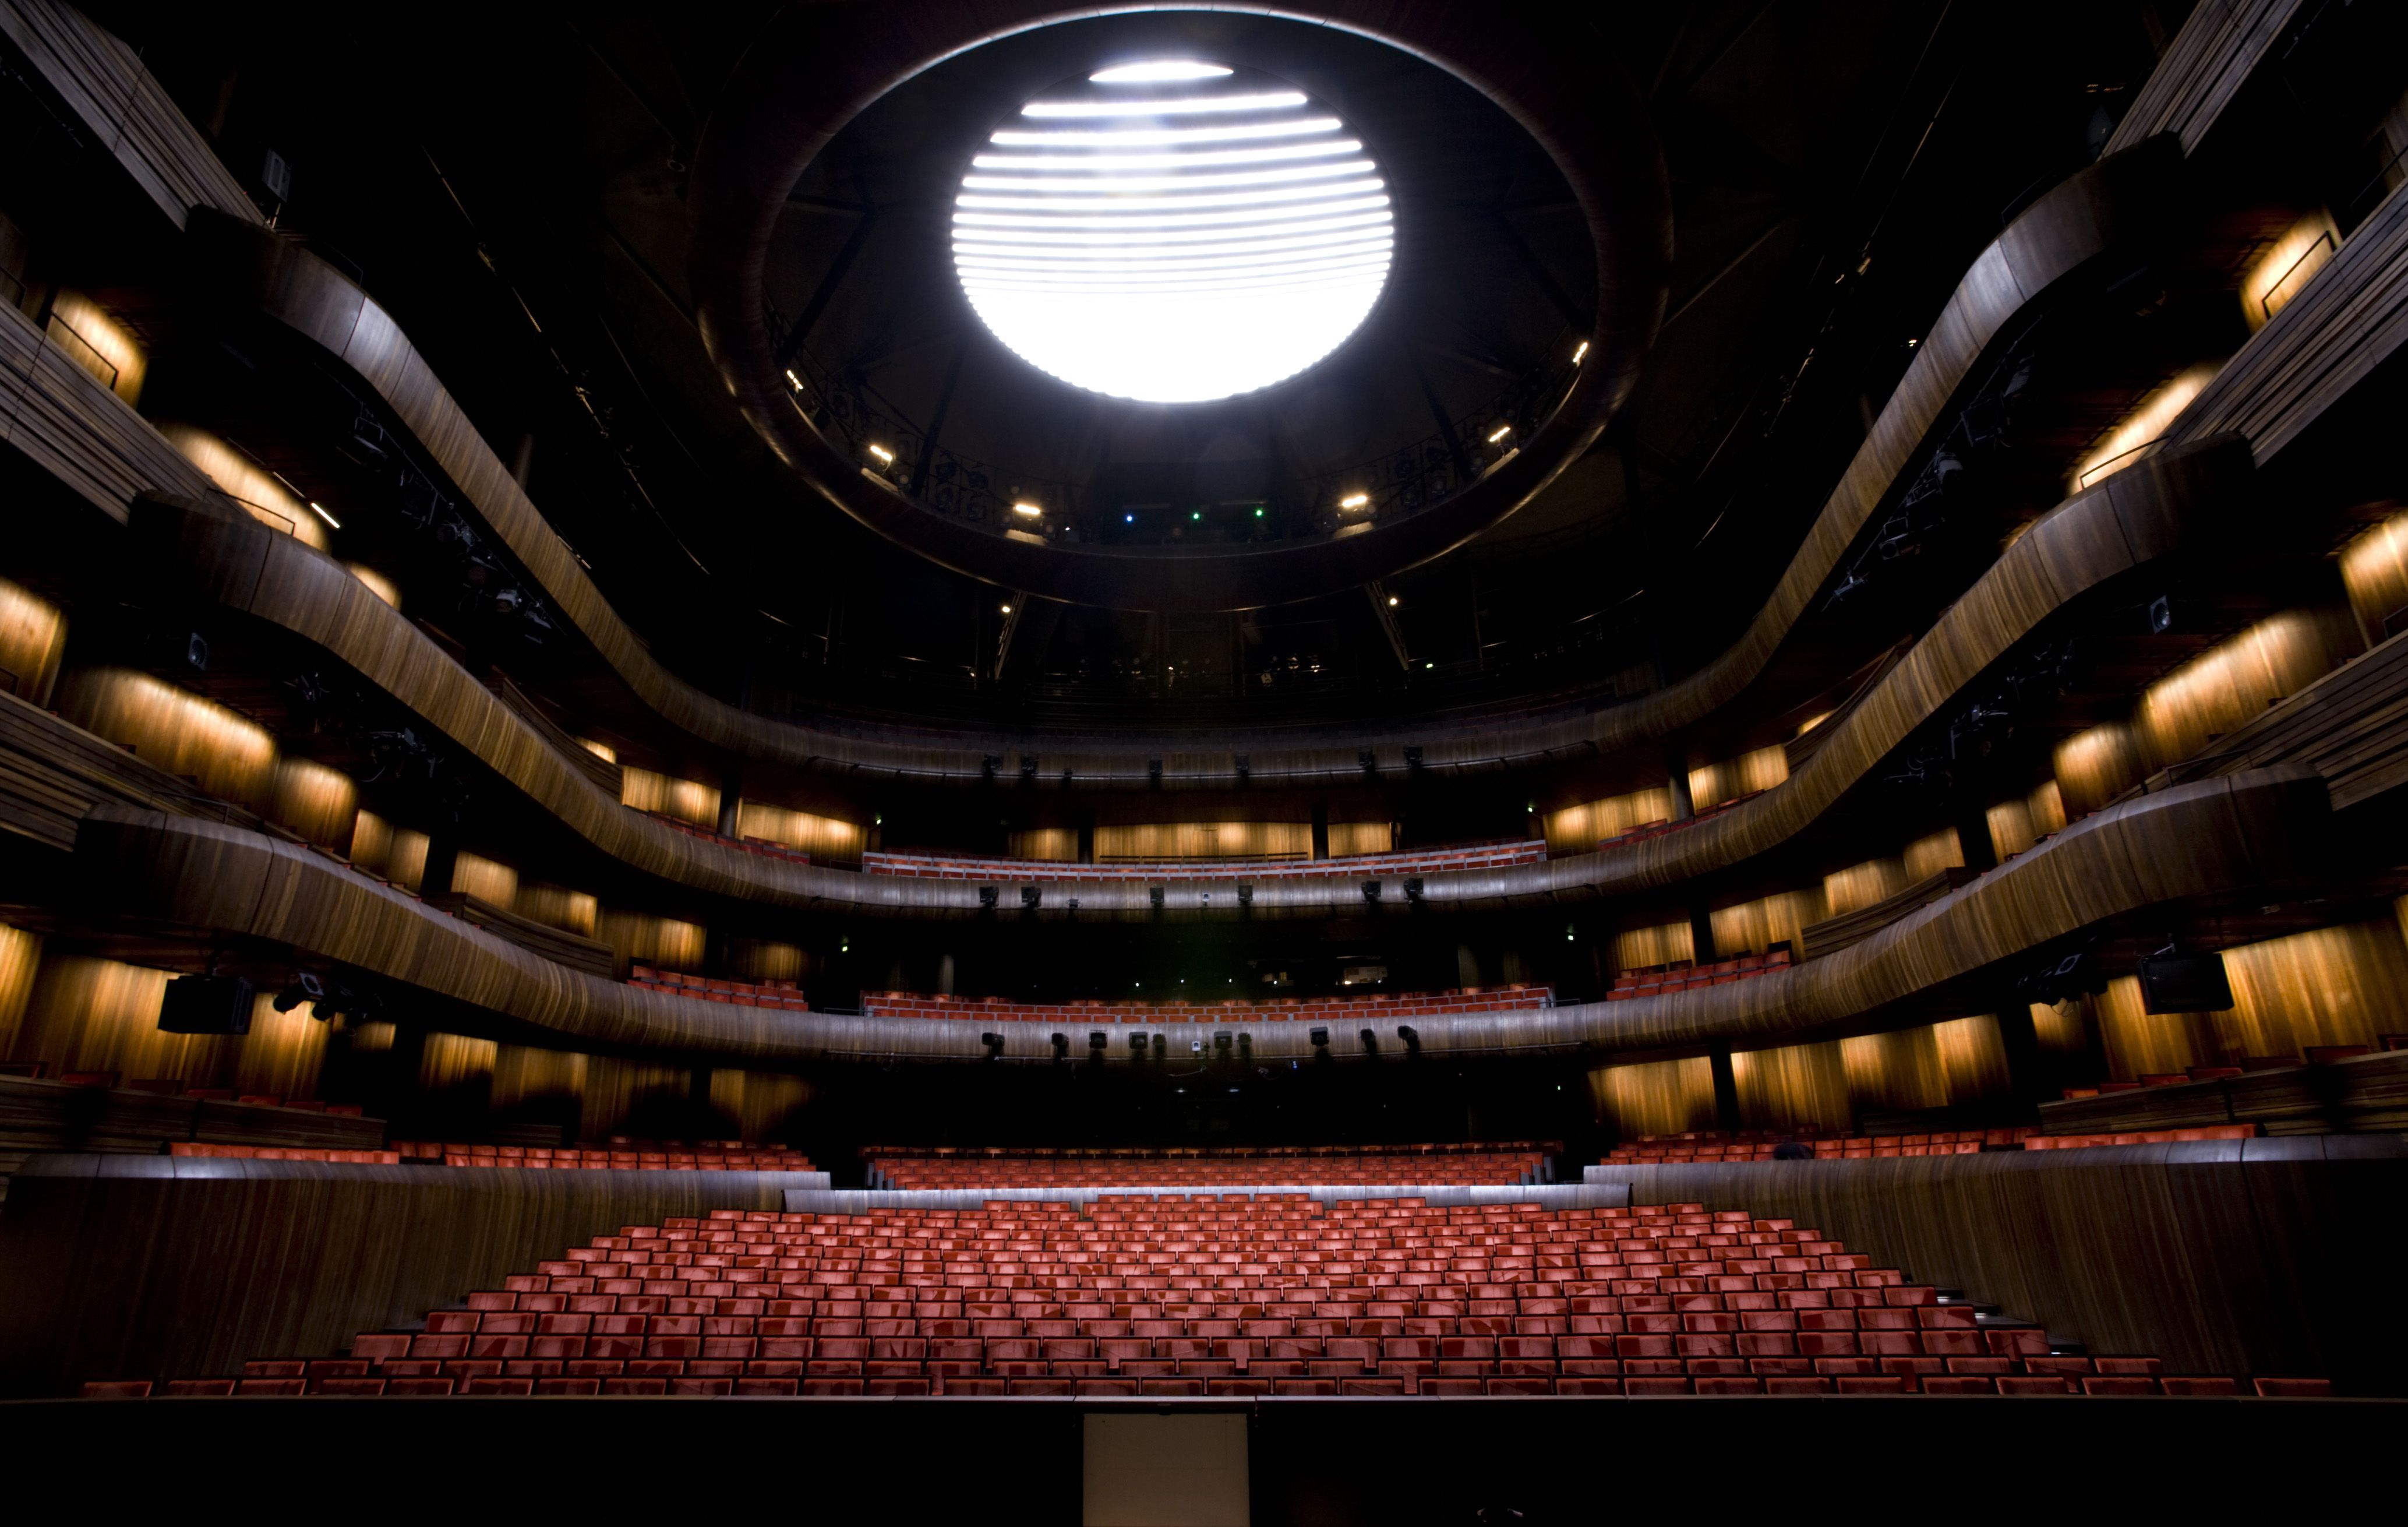 Main Theater at Oslo Opera House, looking from stage out to audience seating